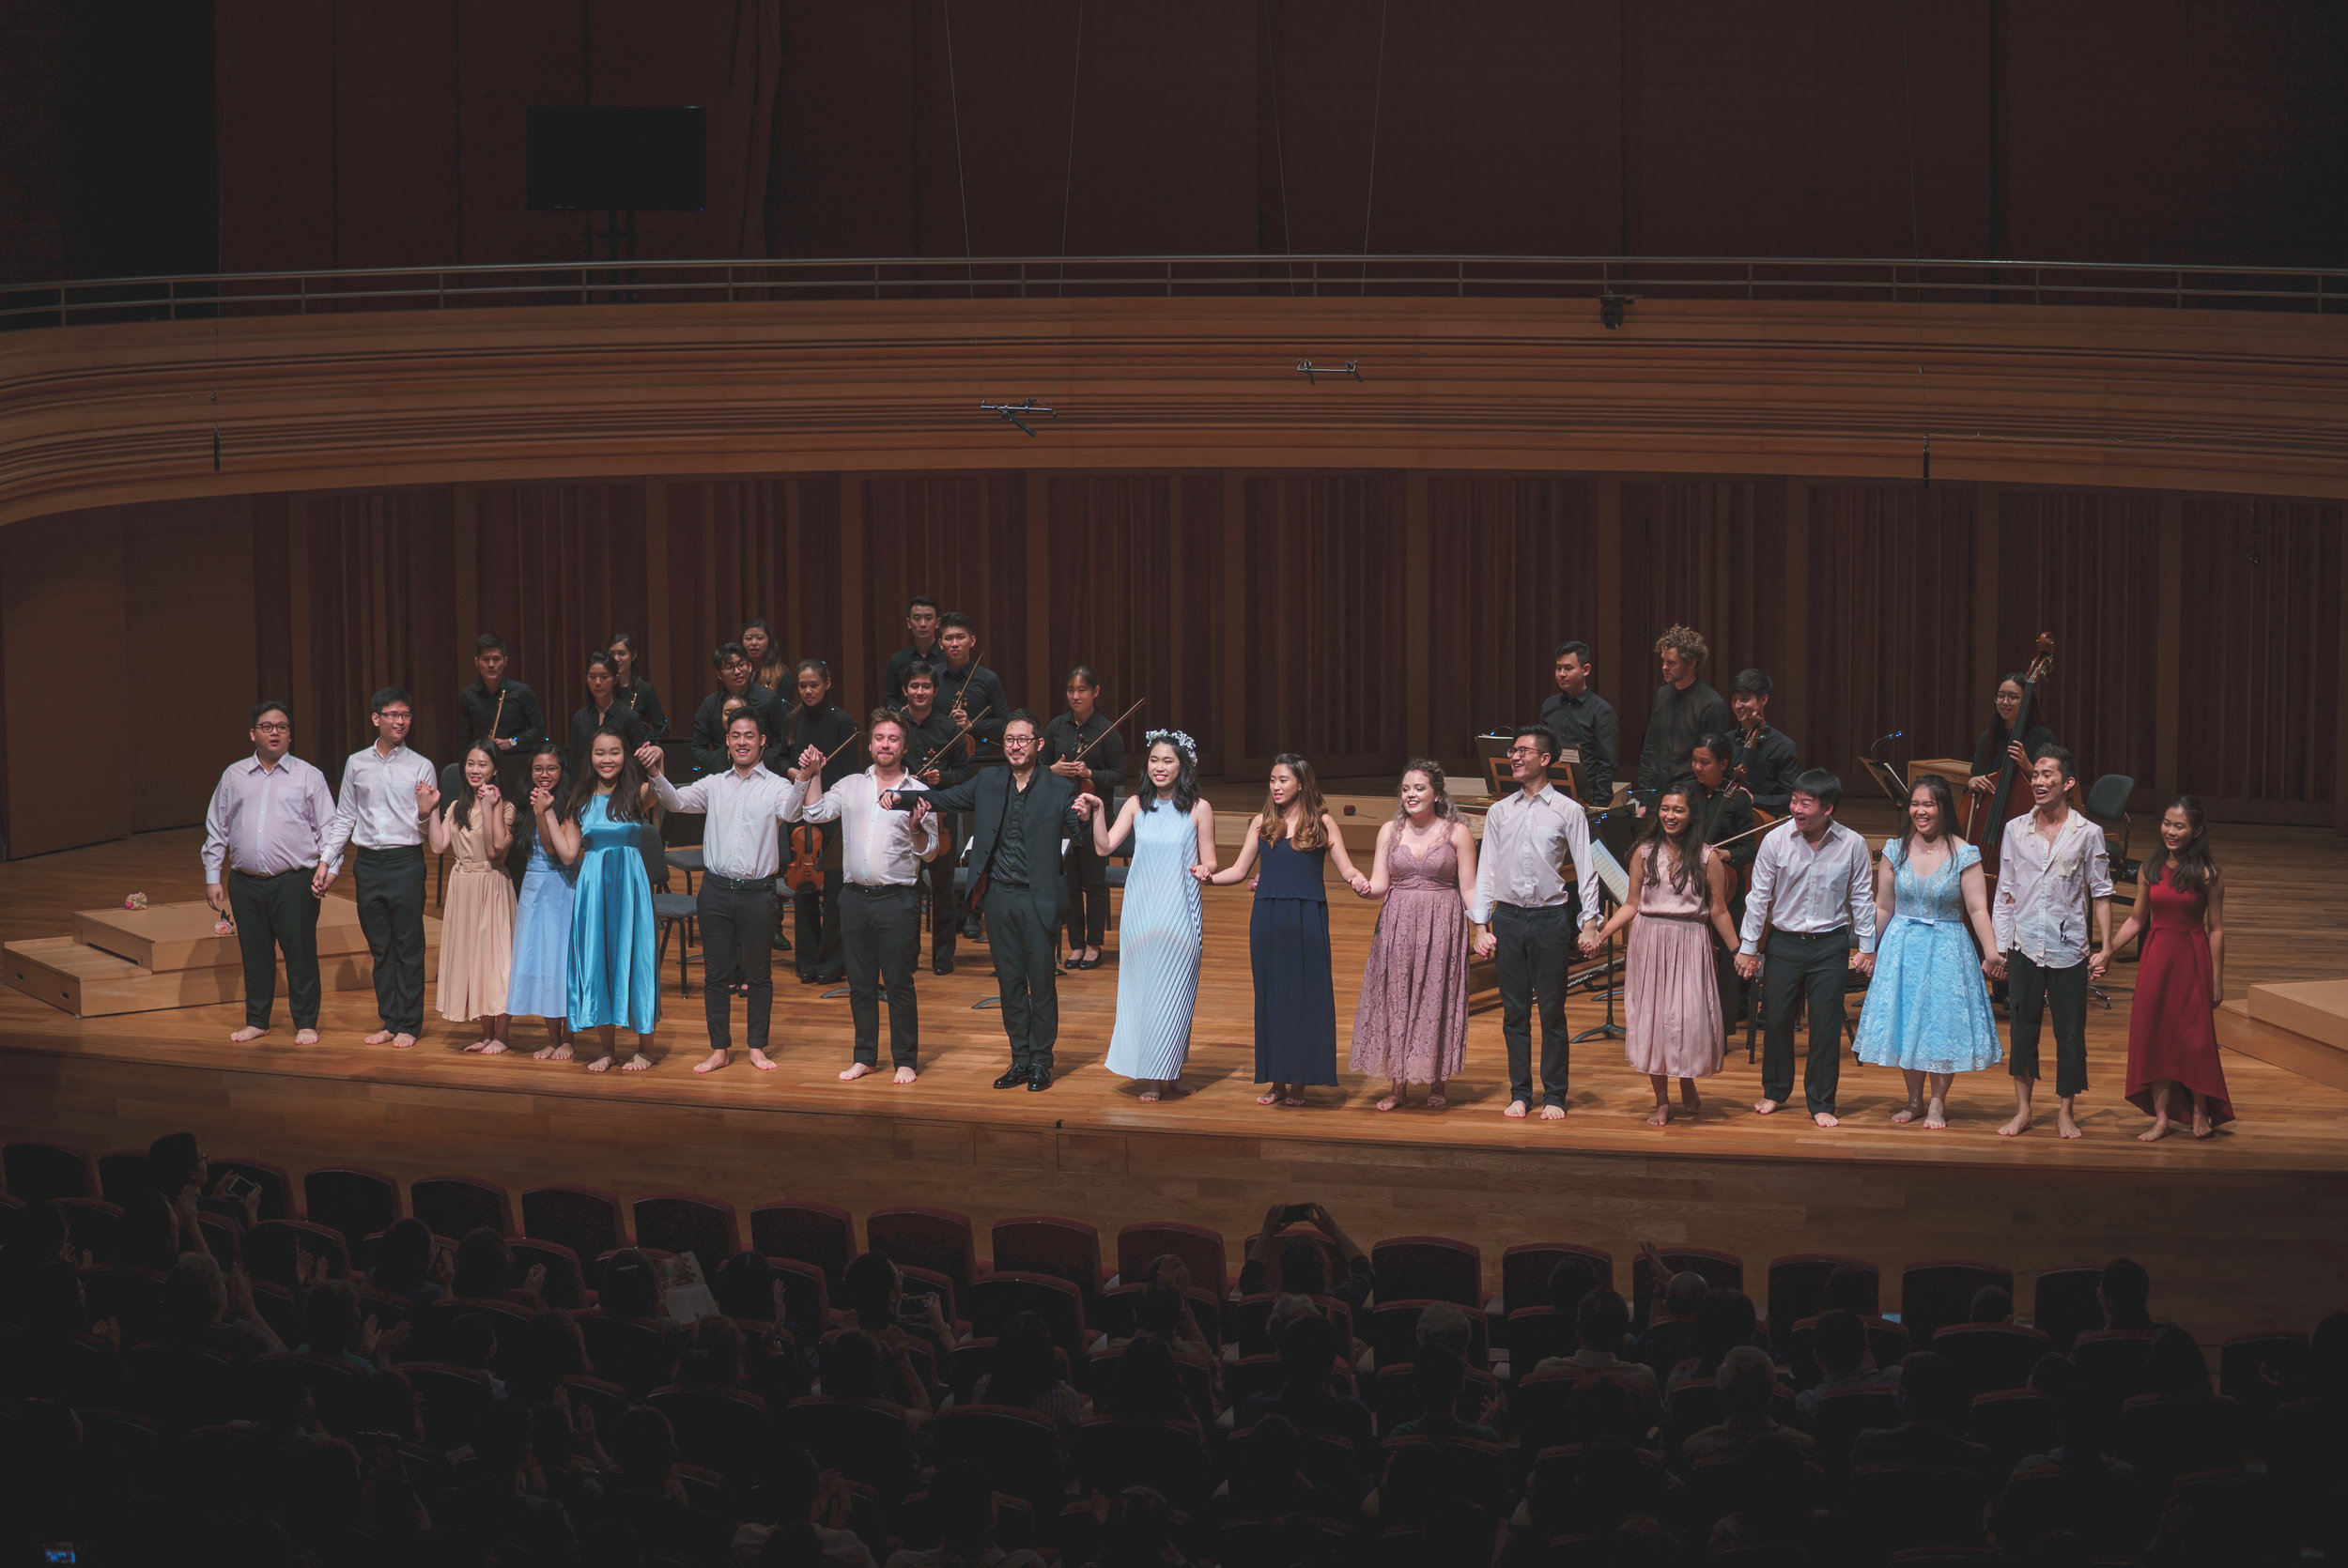 Above: Assoc Prof. Jason Lai (in black suit in the front row) taking a curtain call with the cast and orchestra